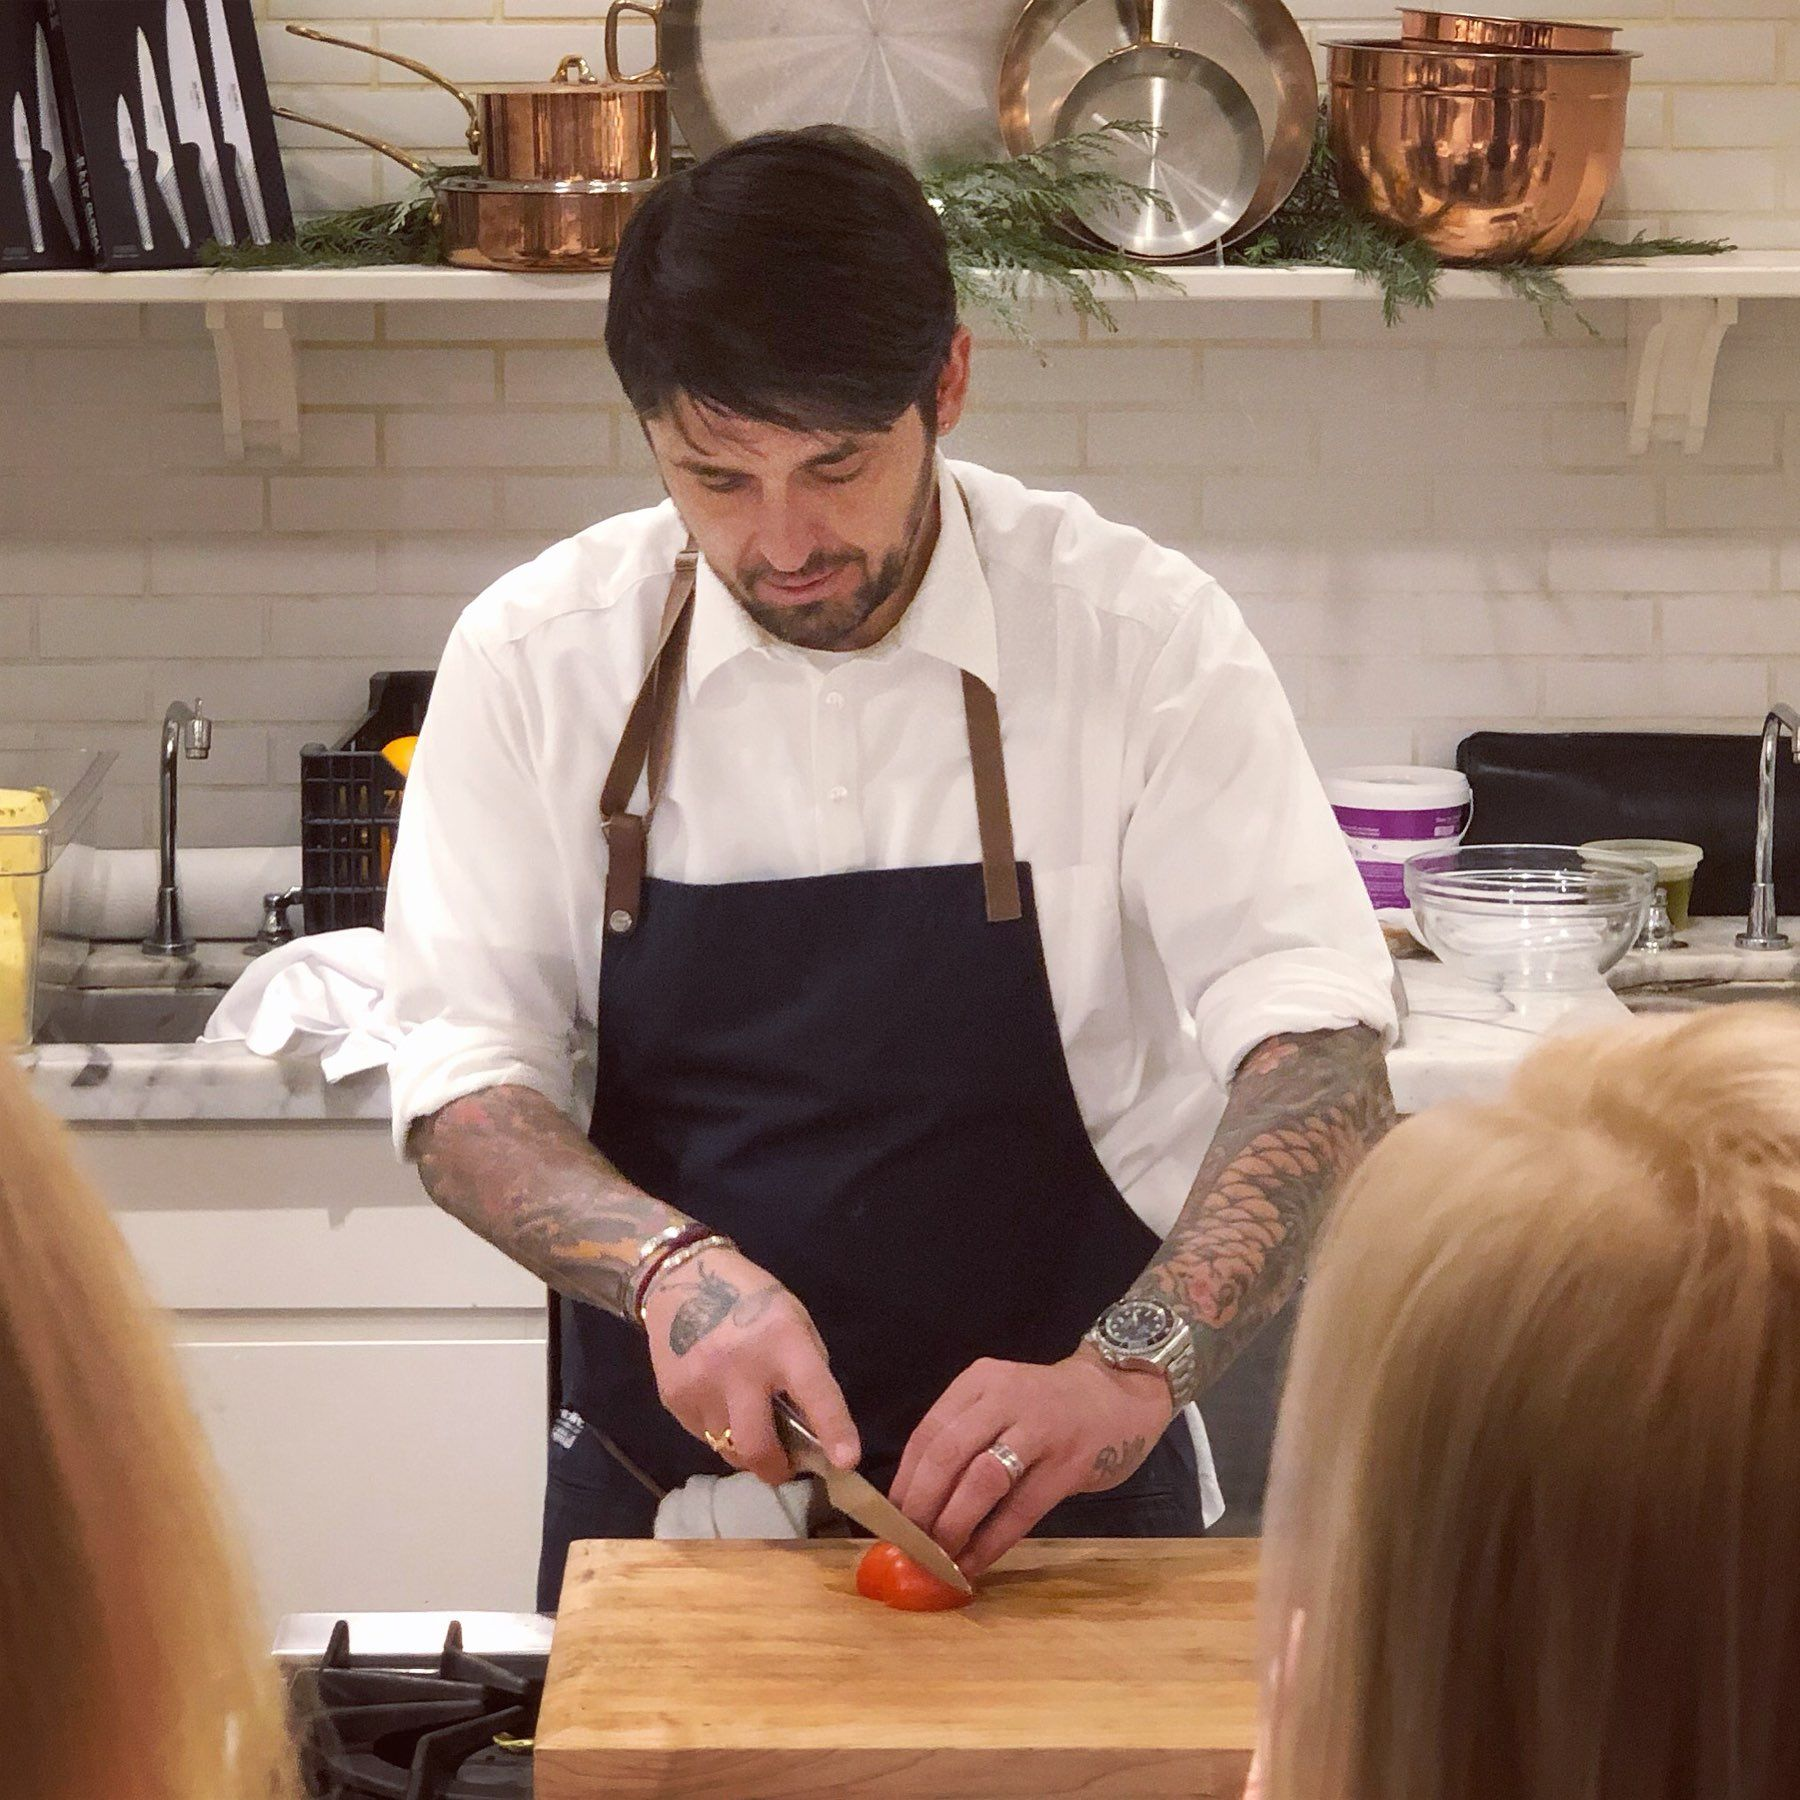 🔪 Knife Skills Workshop with Chef Ludo